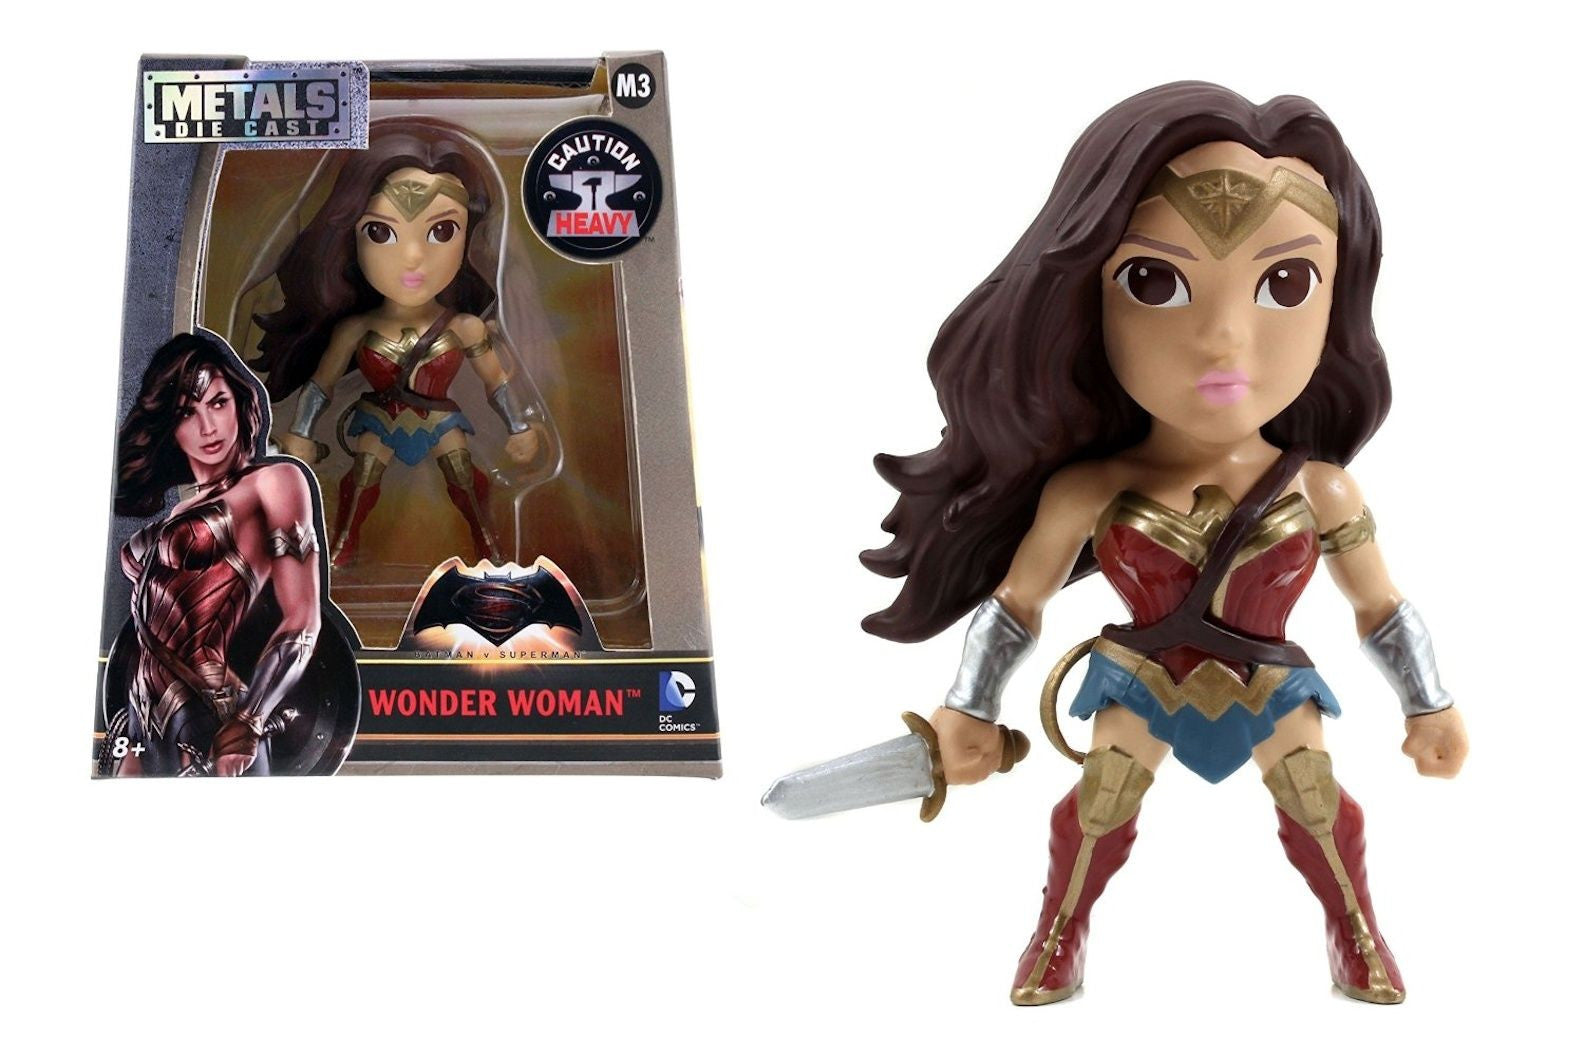 Metals Die Cast - DC - Batman v Superman - Wonder Woman (M3) 4-Inch Metal Figure